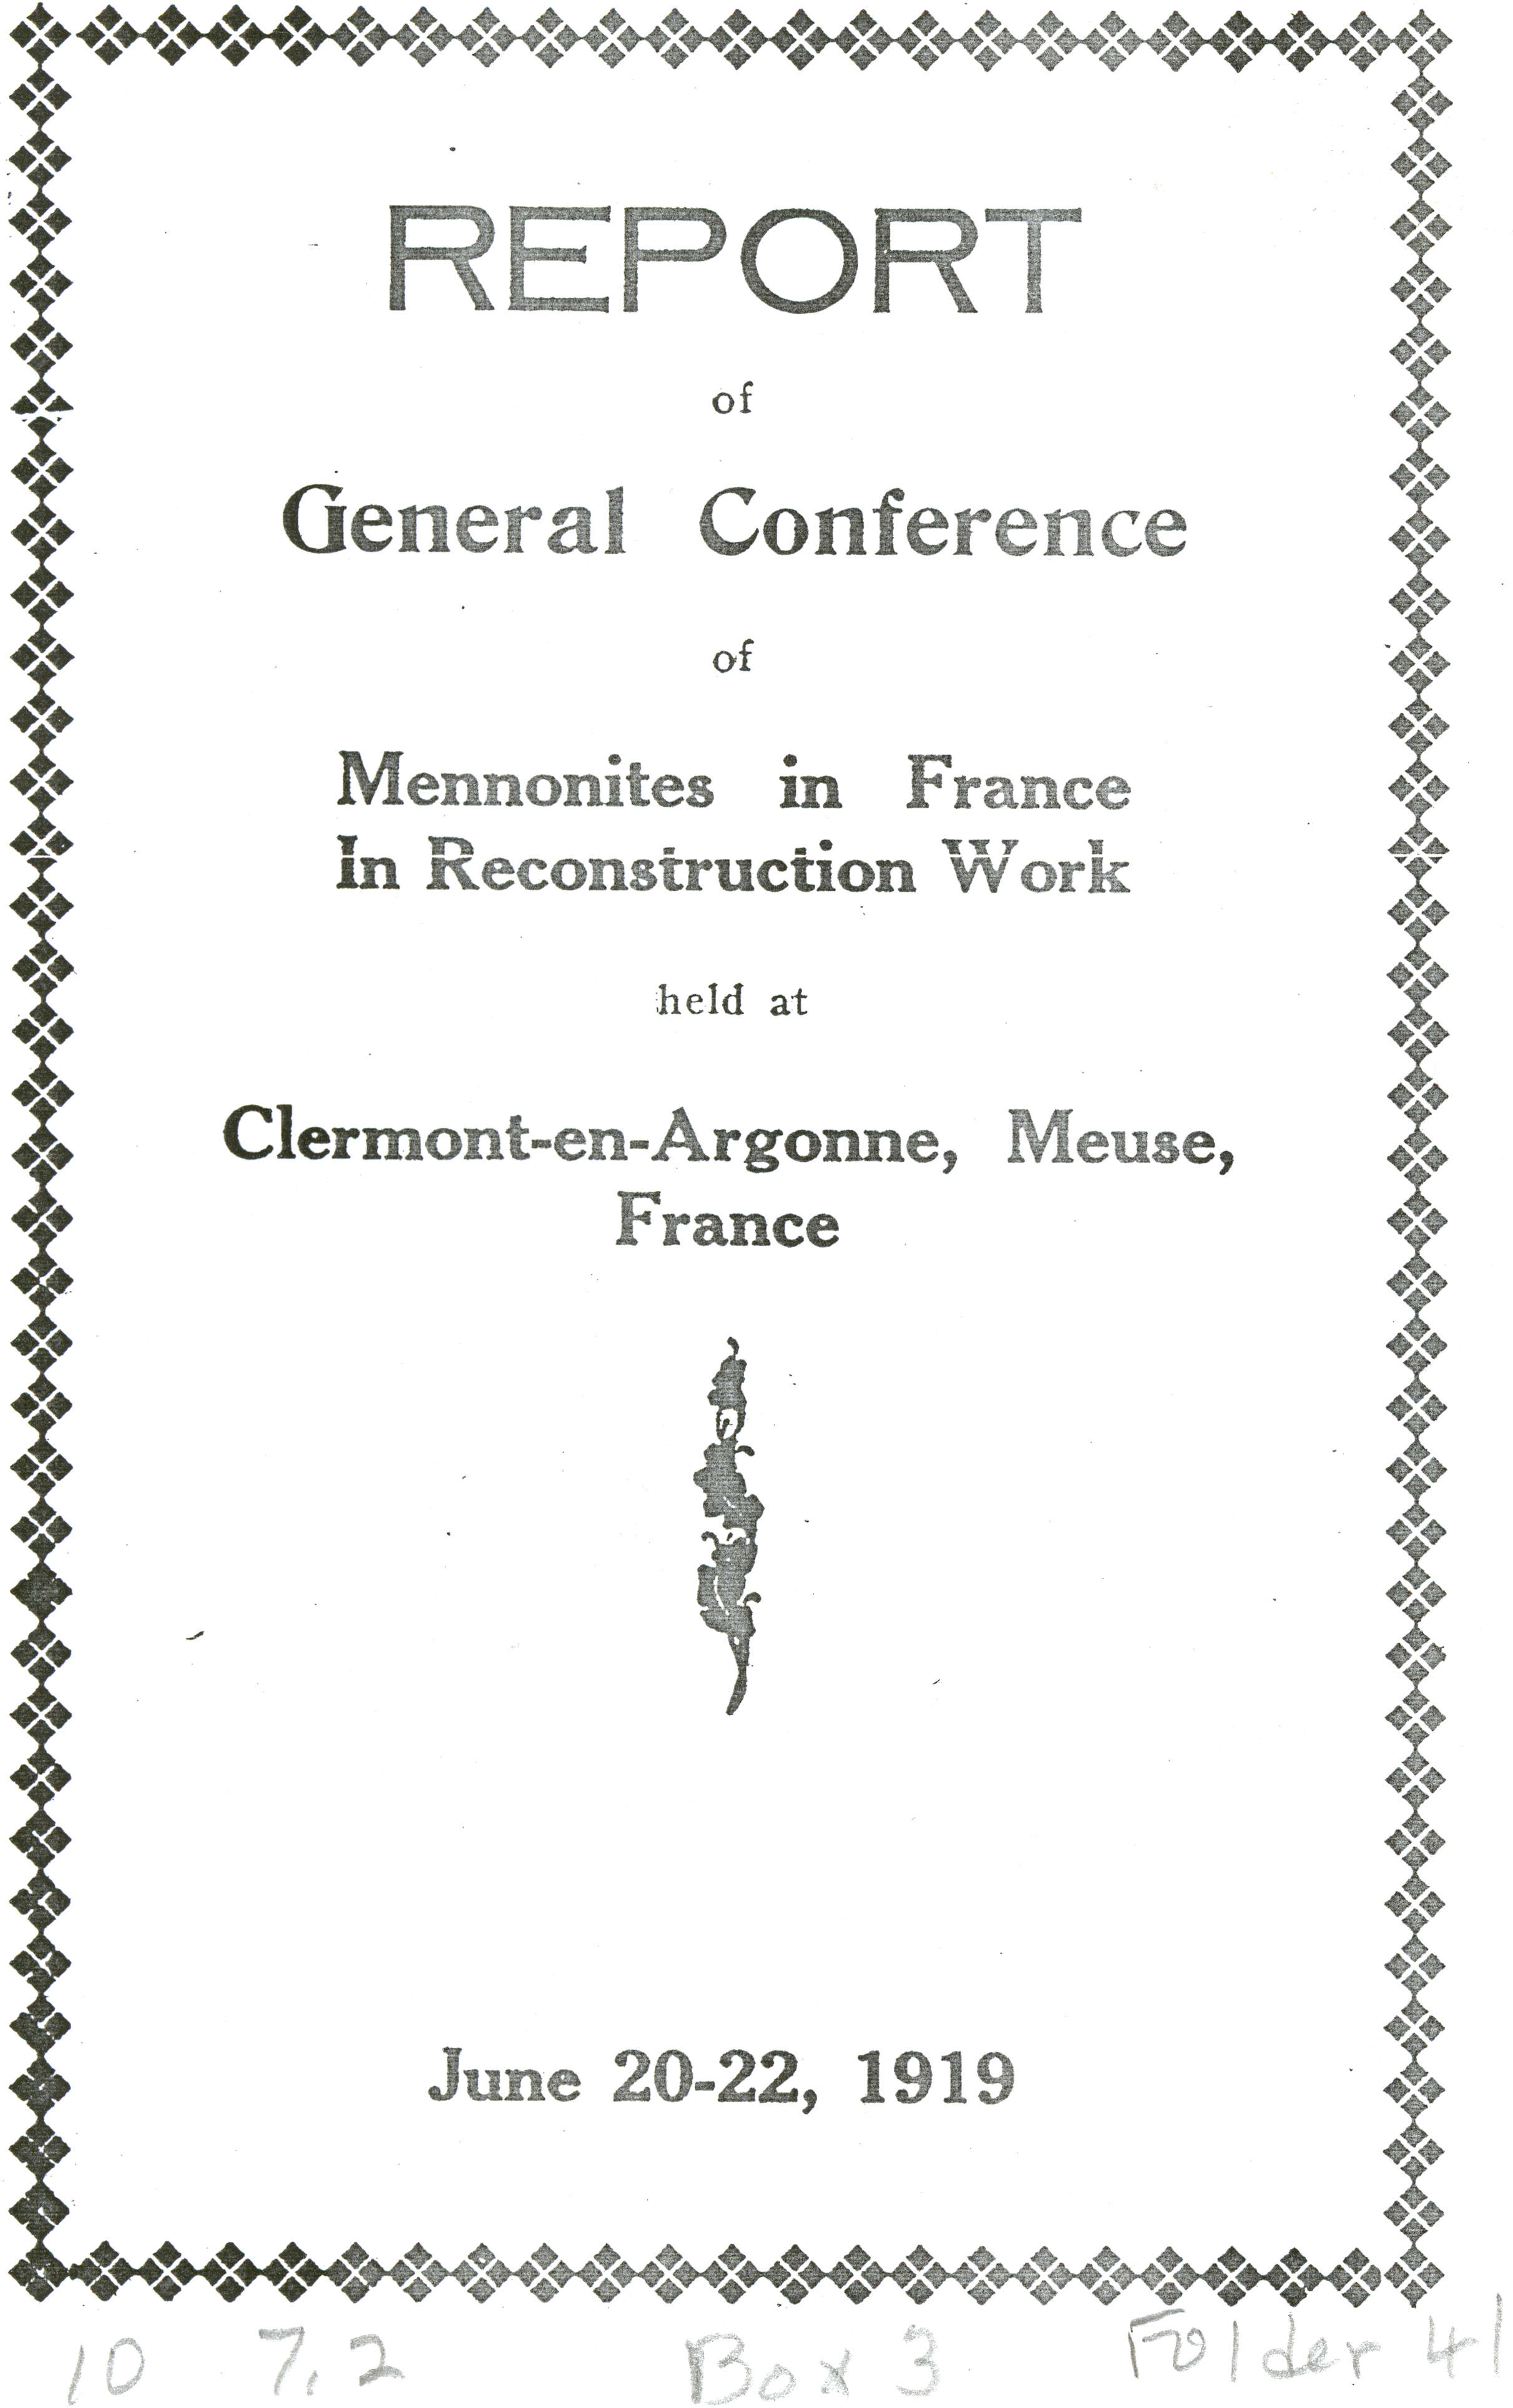 04 Report Mennonites in France page 1.jpg